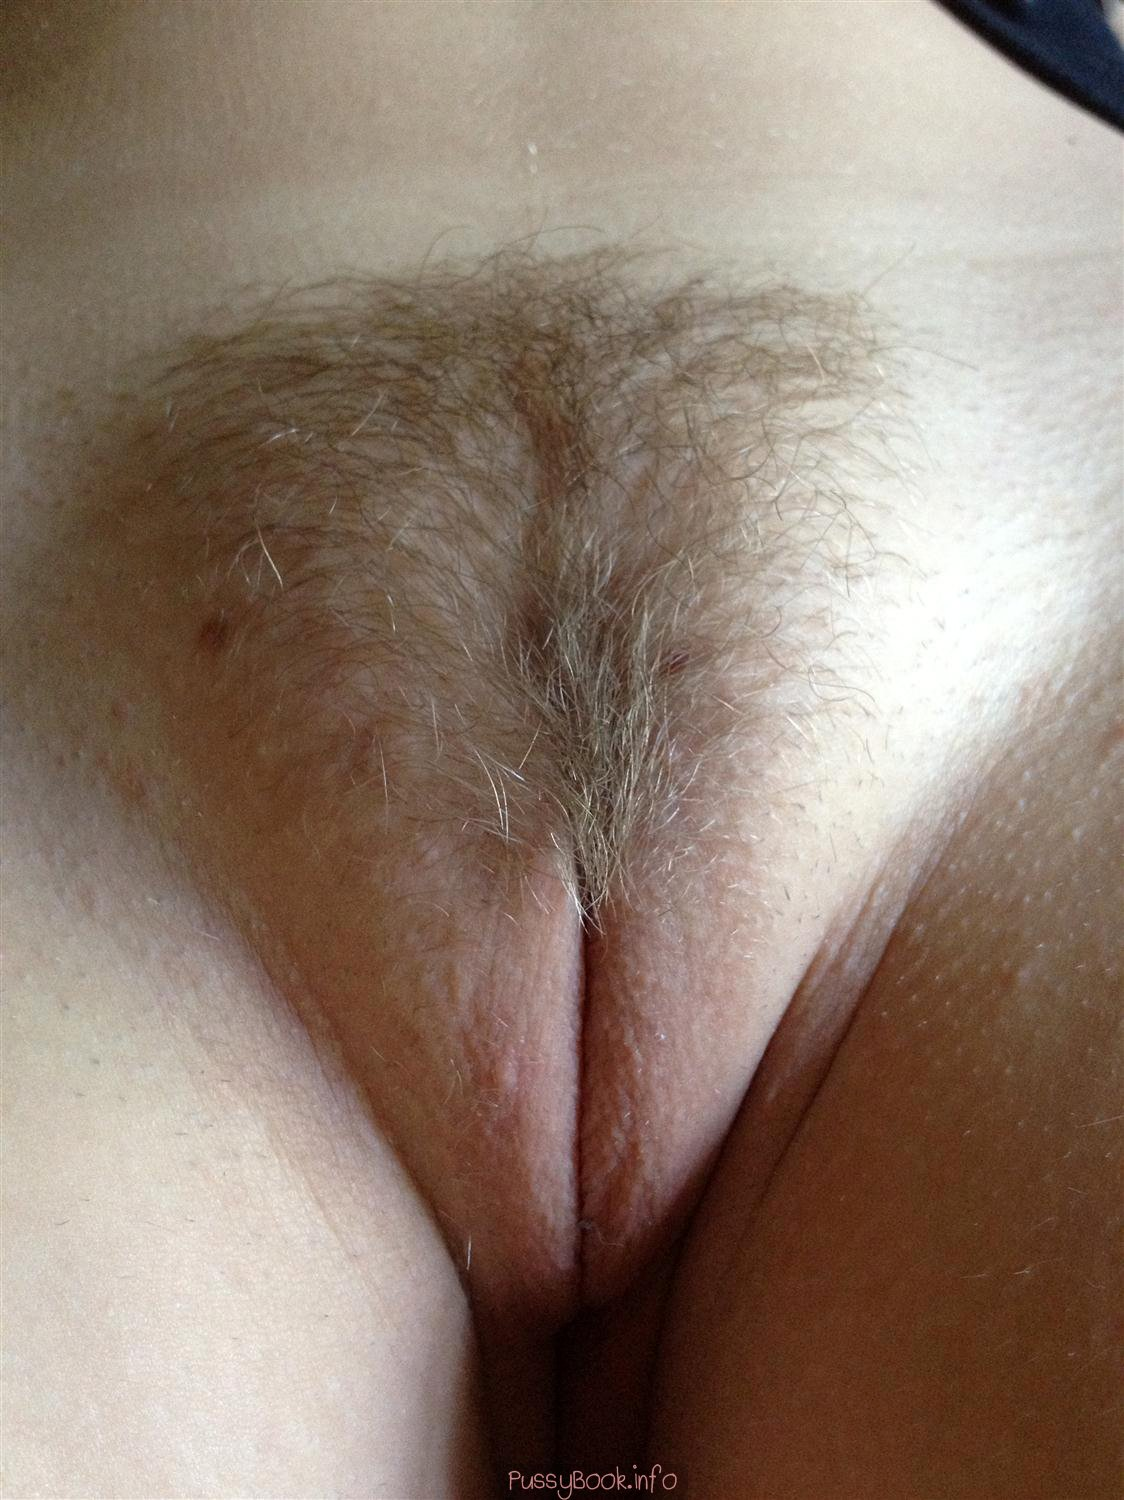 My gf hairy pussy i love it when she did not shave for a while